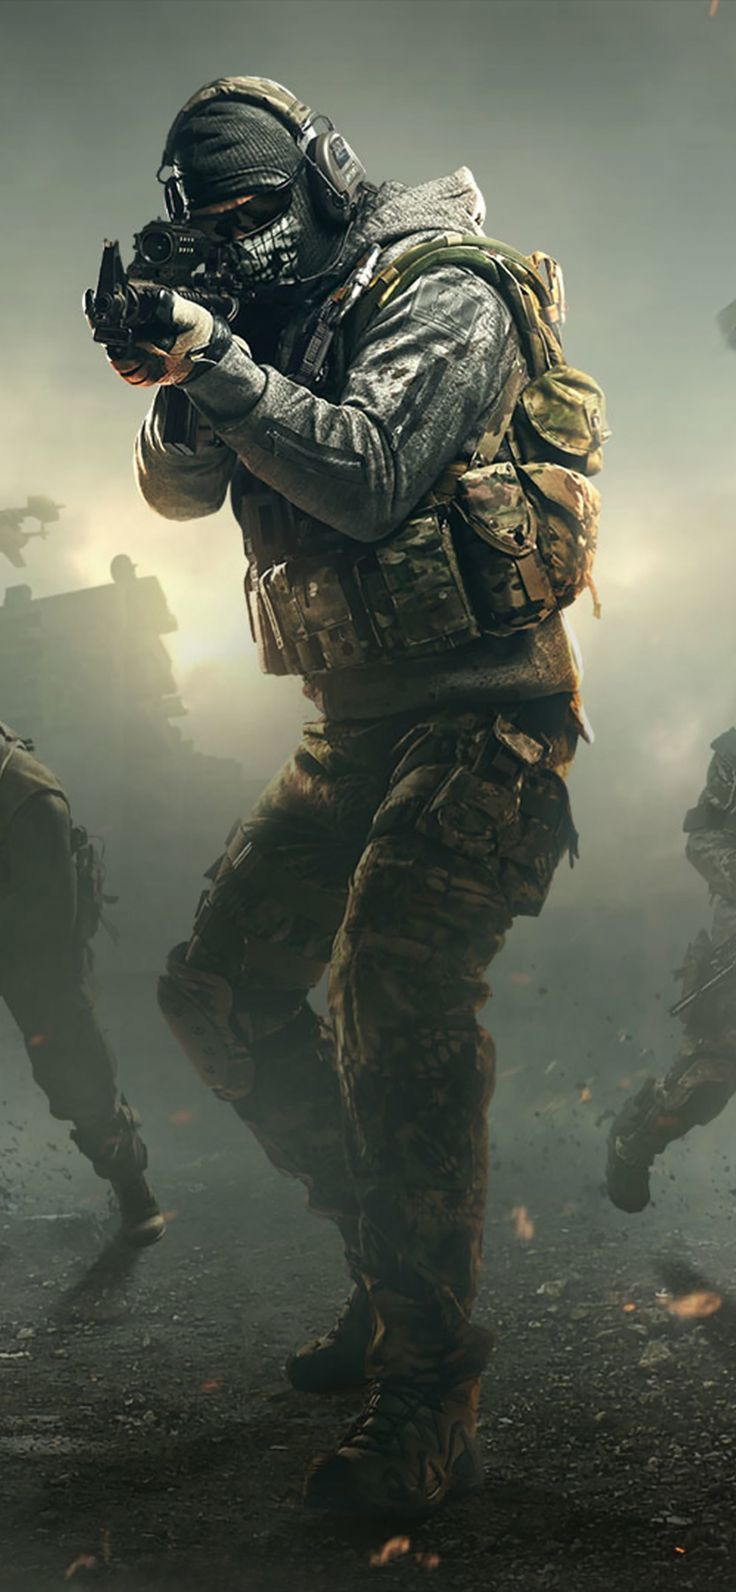 Call of Duty Mobile 2019 iPhone 11 Pro Max Wallpaper